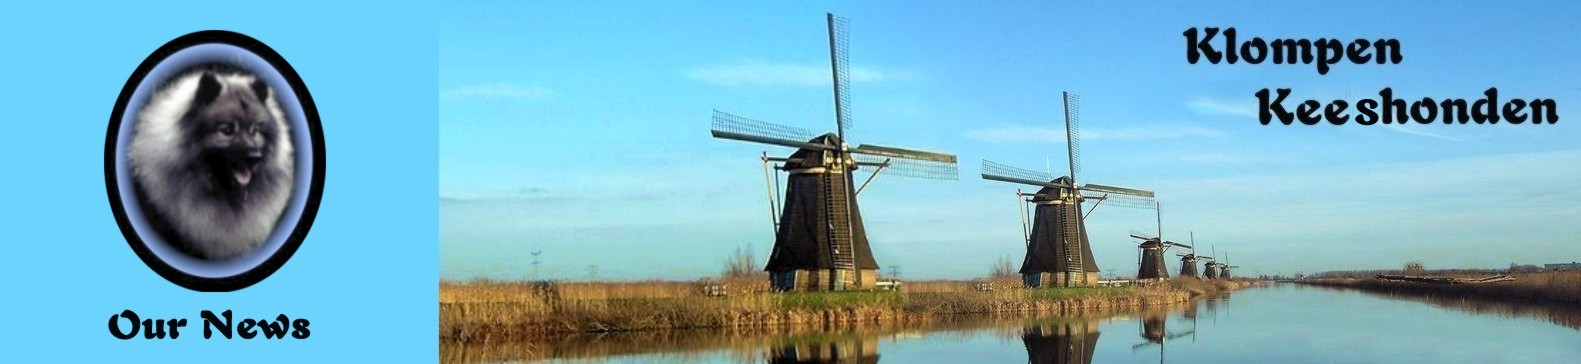 row of windmills found in Kinderdijk, Holland